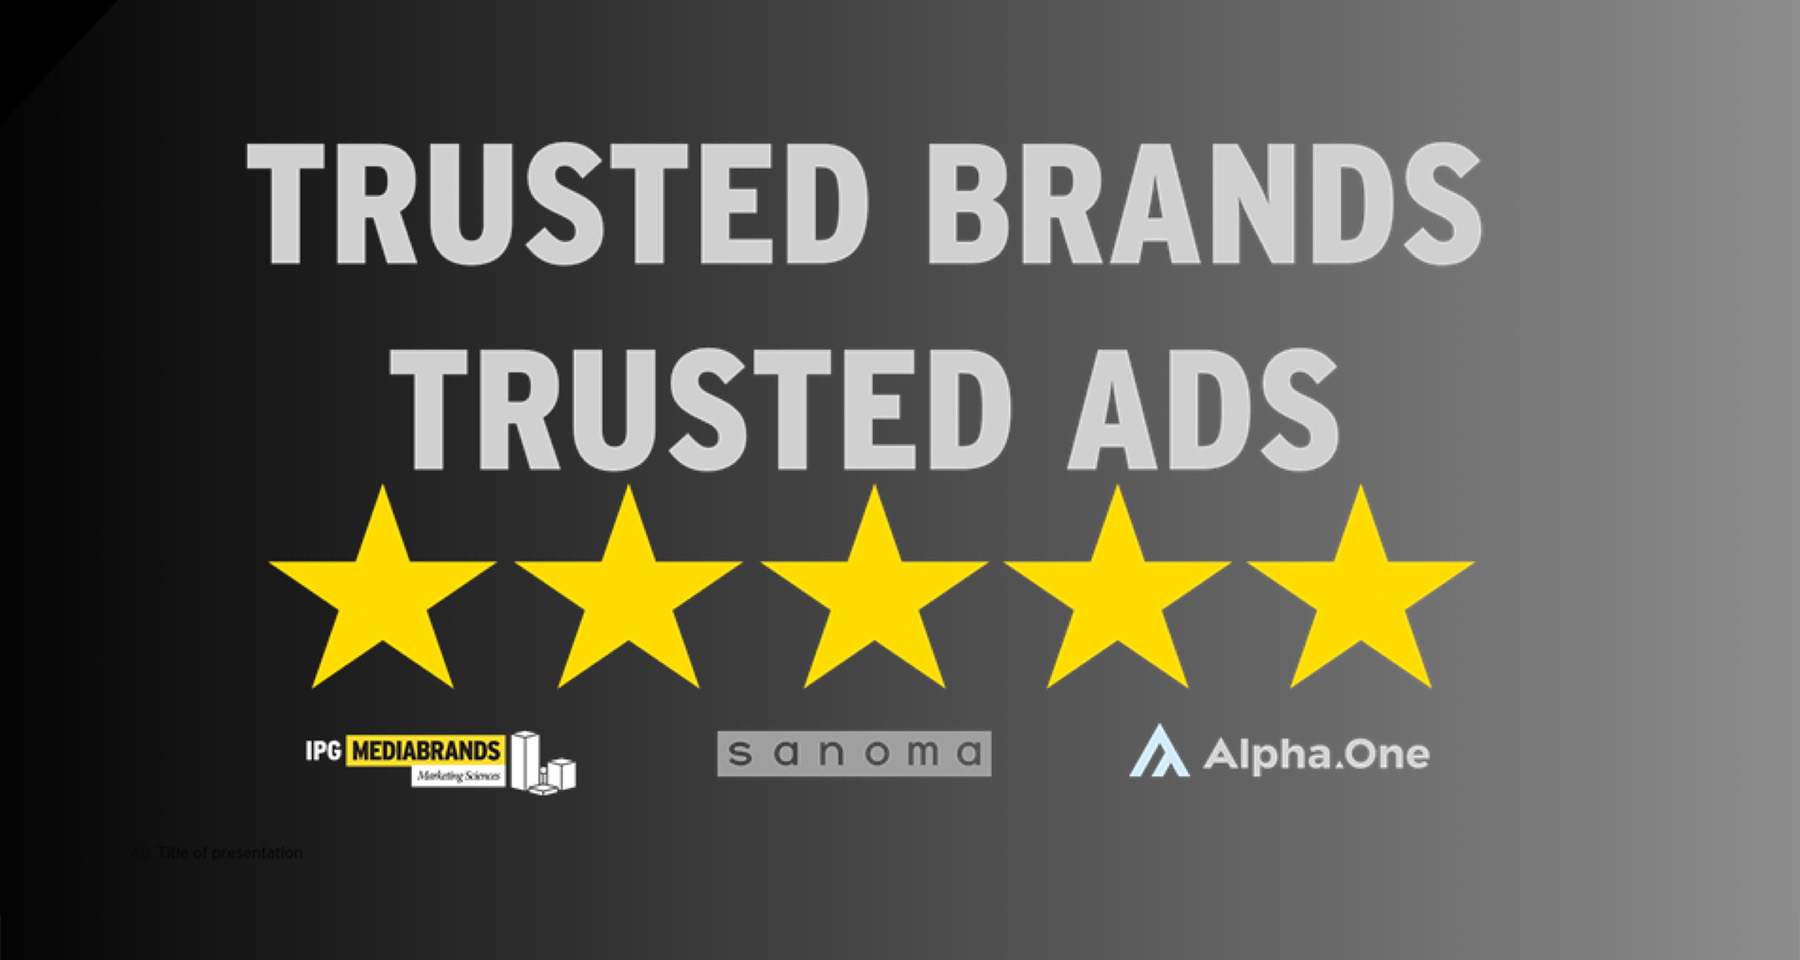 Research: Advertising on trusted media platforms increases brand preference